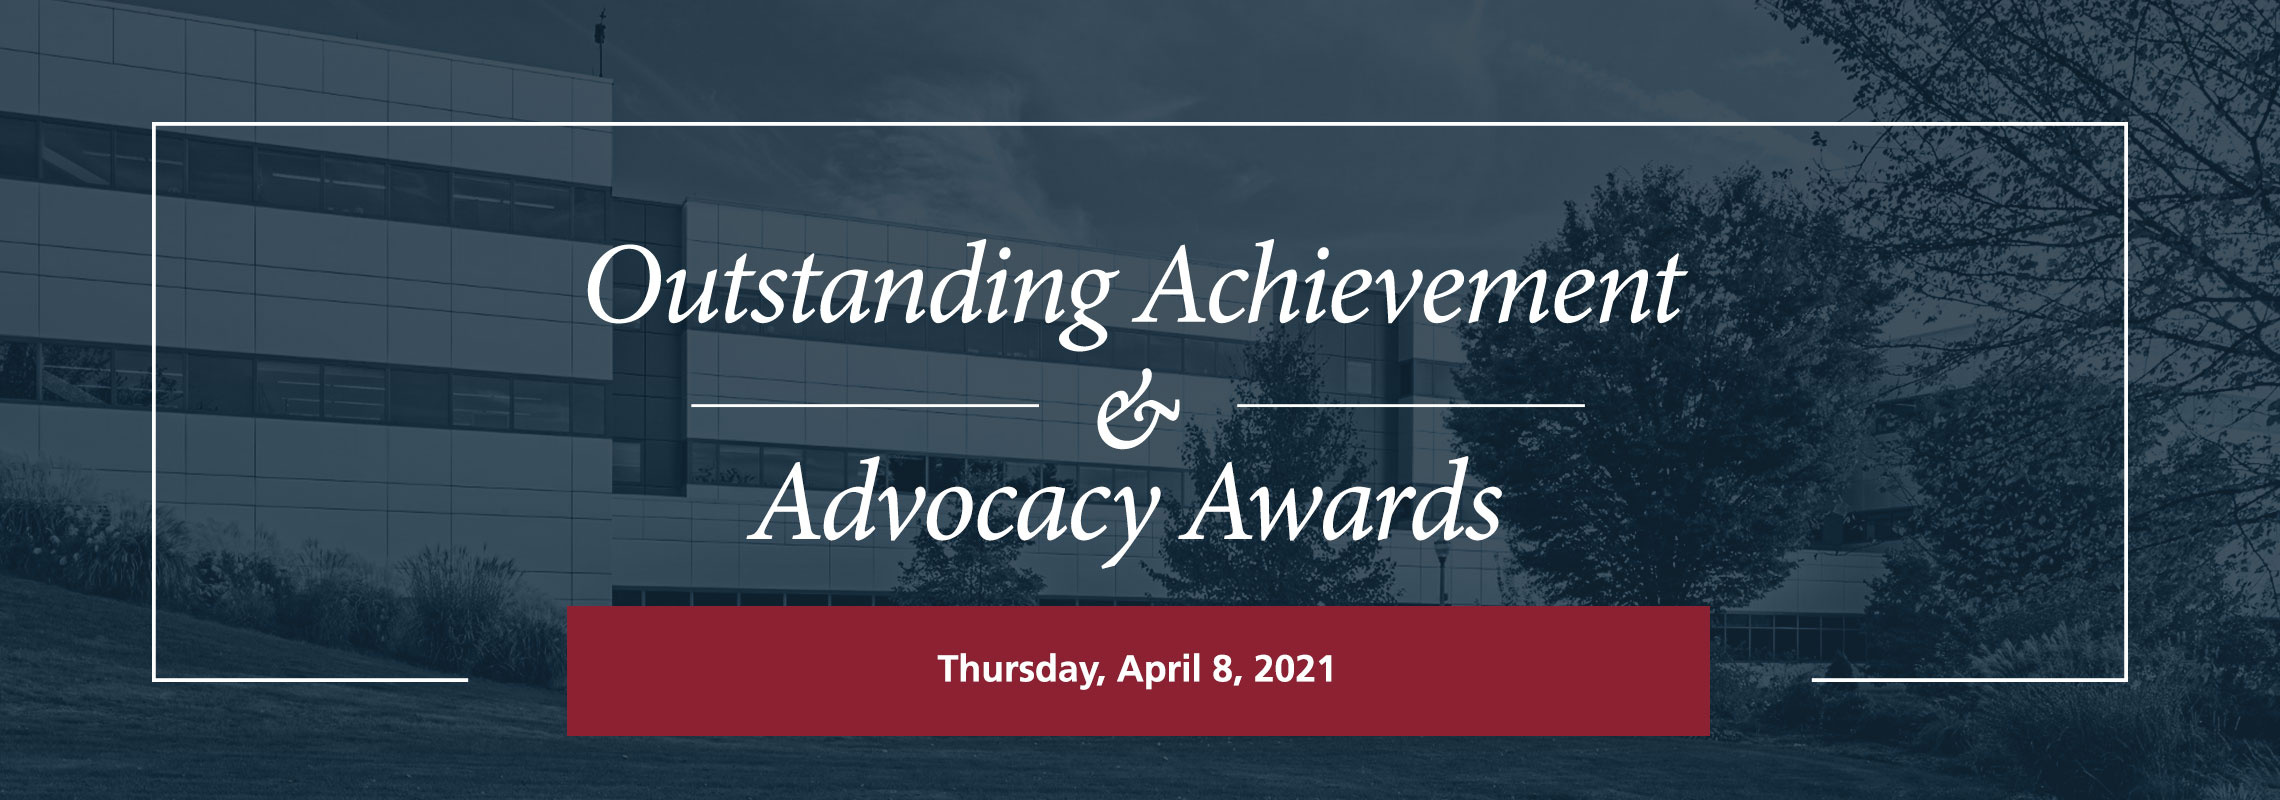 2021 Outstanding Achievement & Advocacy Awards